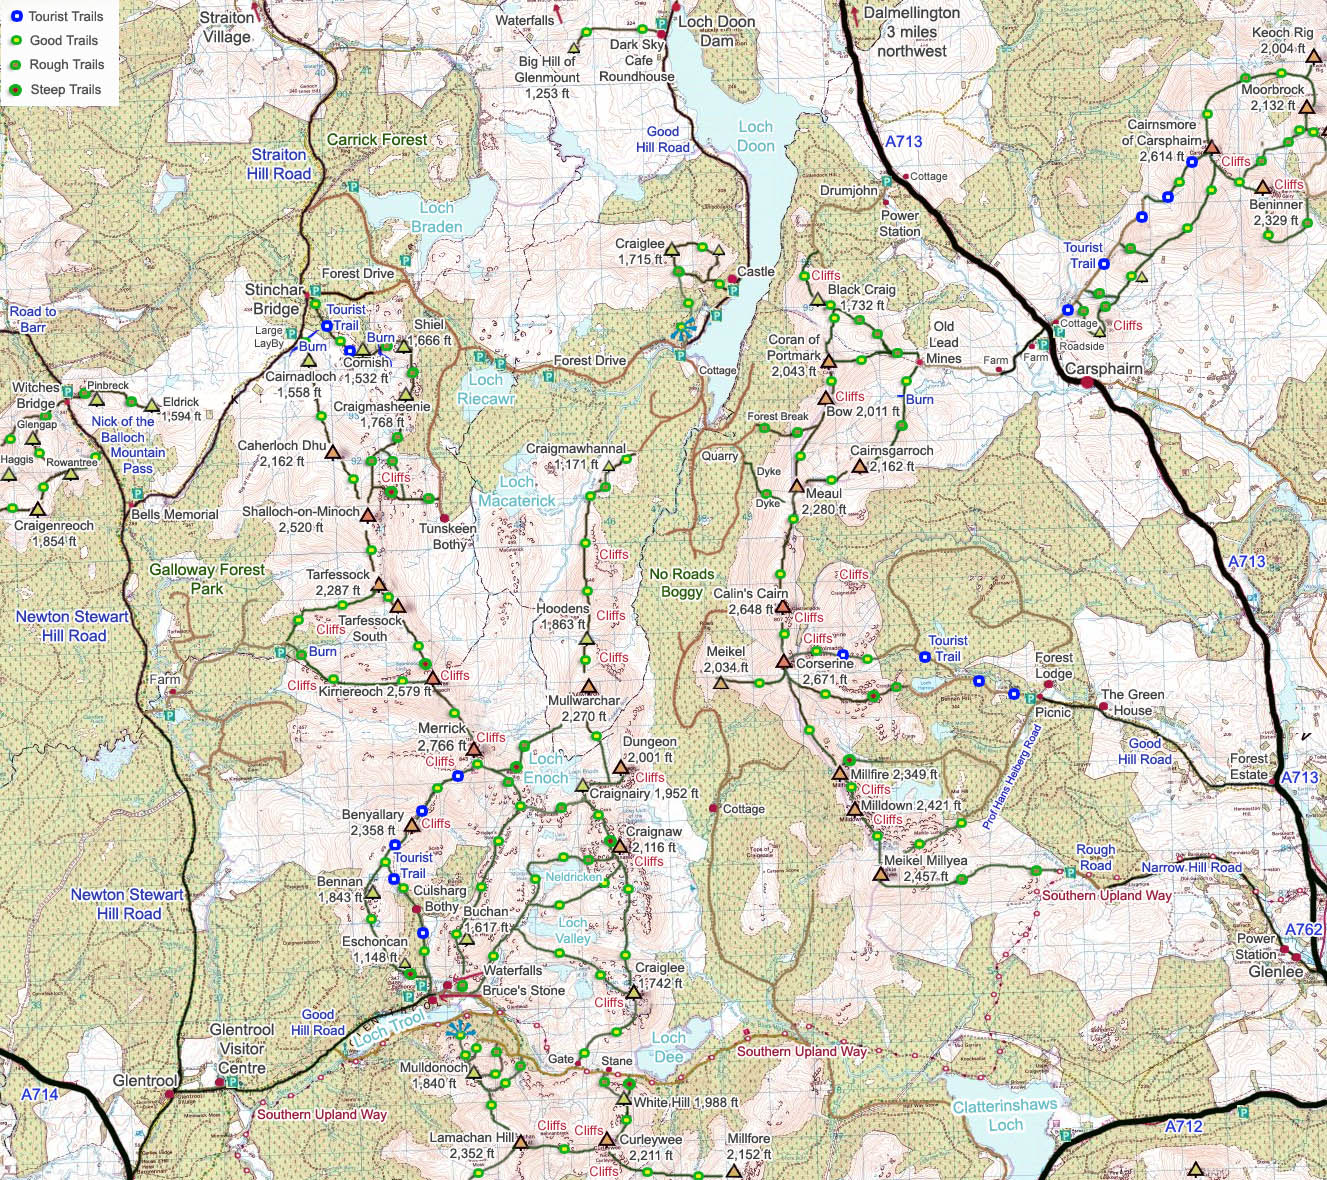 The Merrick Walk By Ayrshire - Map your walking route